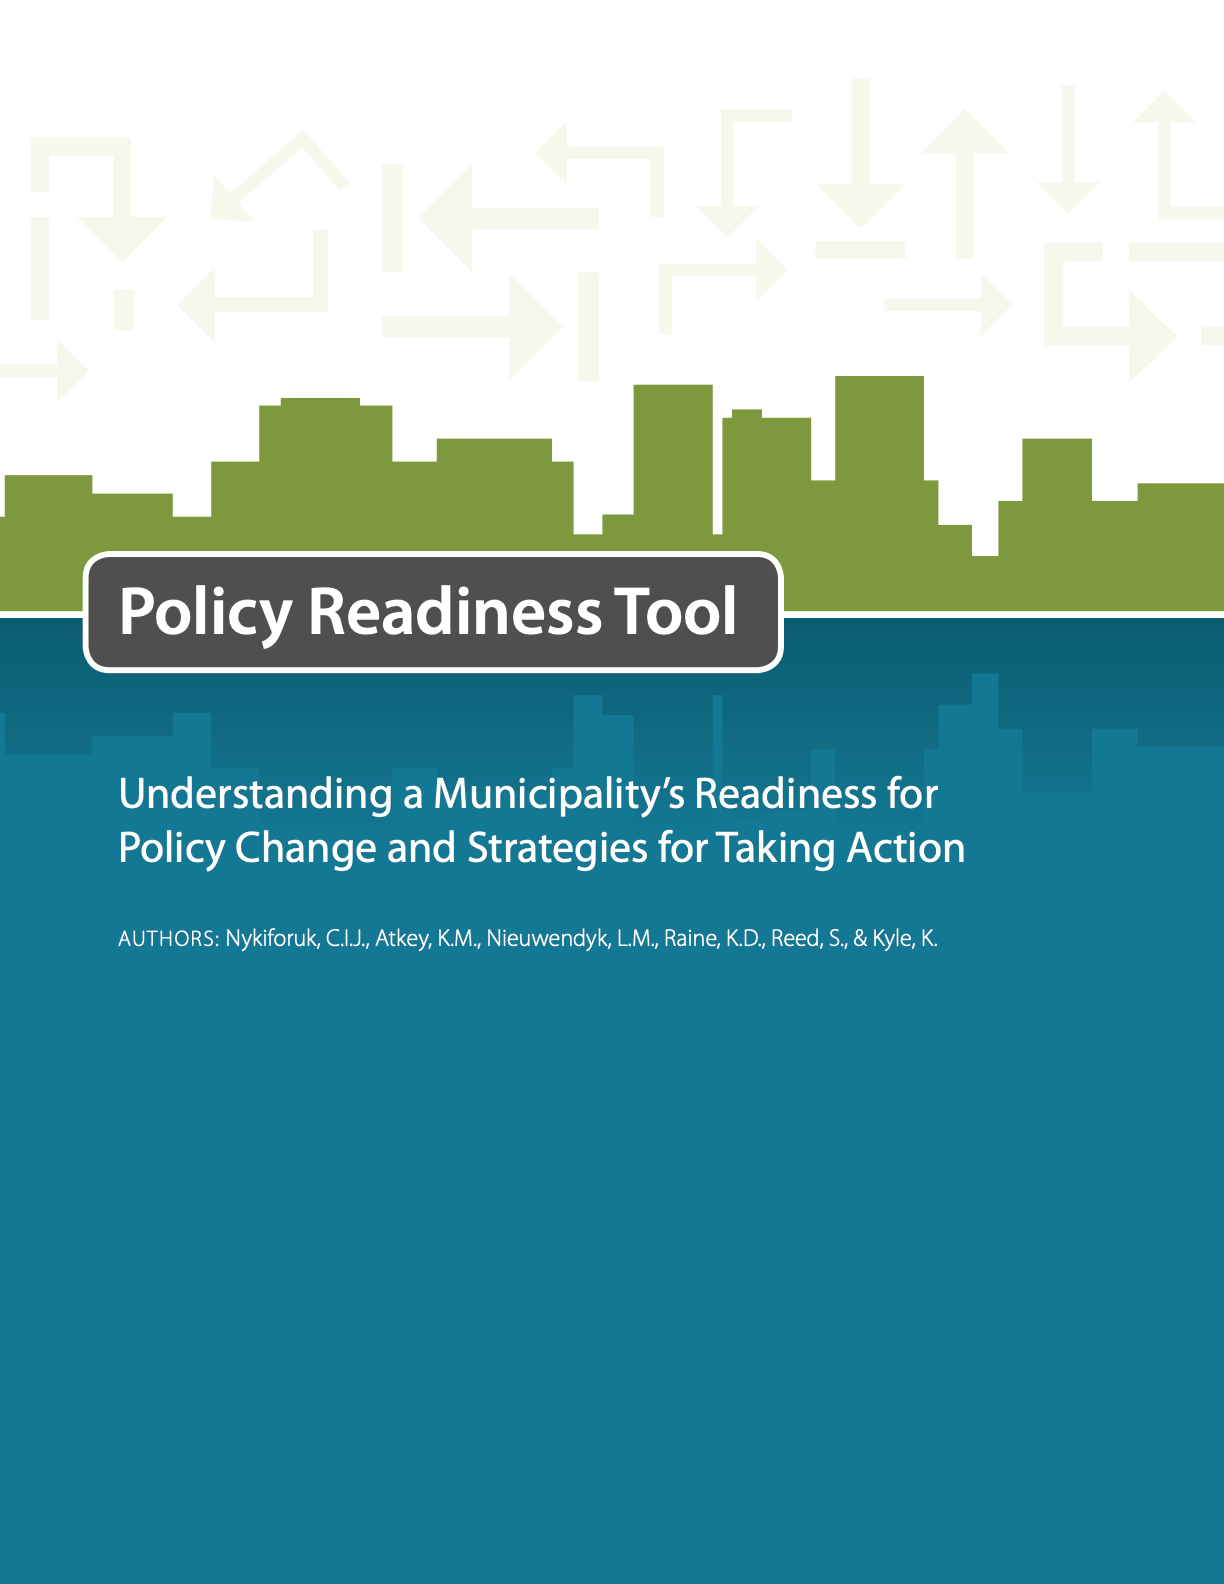 Policy Readiness Tool: Understanding a Municipality's Readiness for Policy Change and Strategies for Taking Action